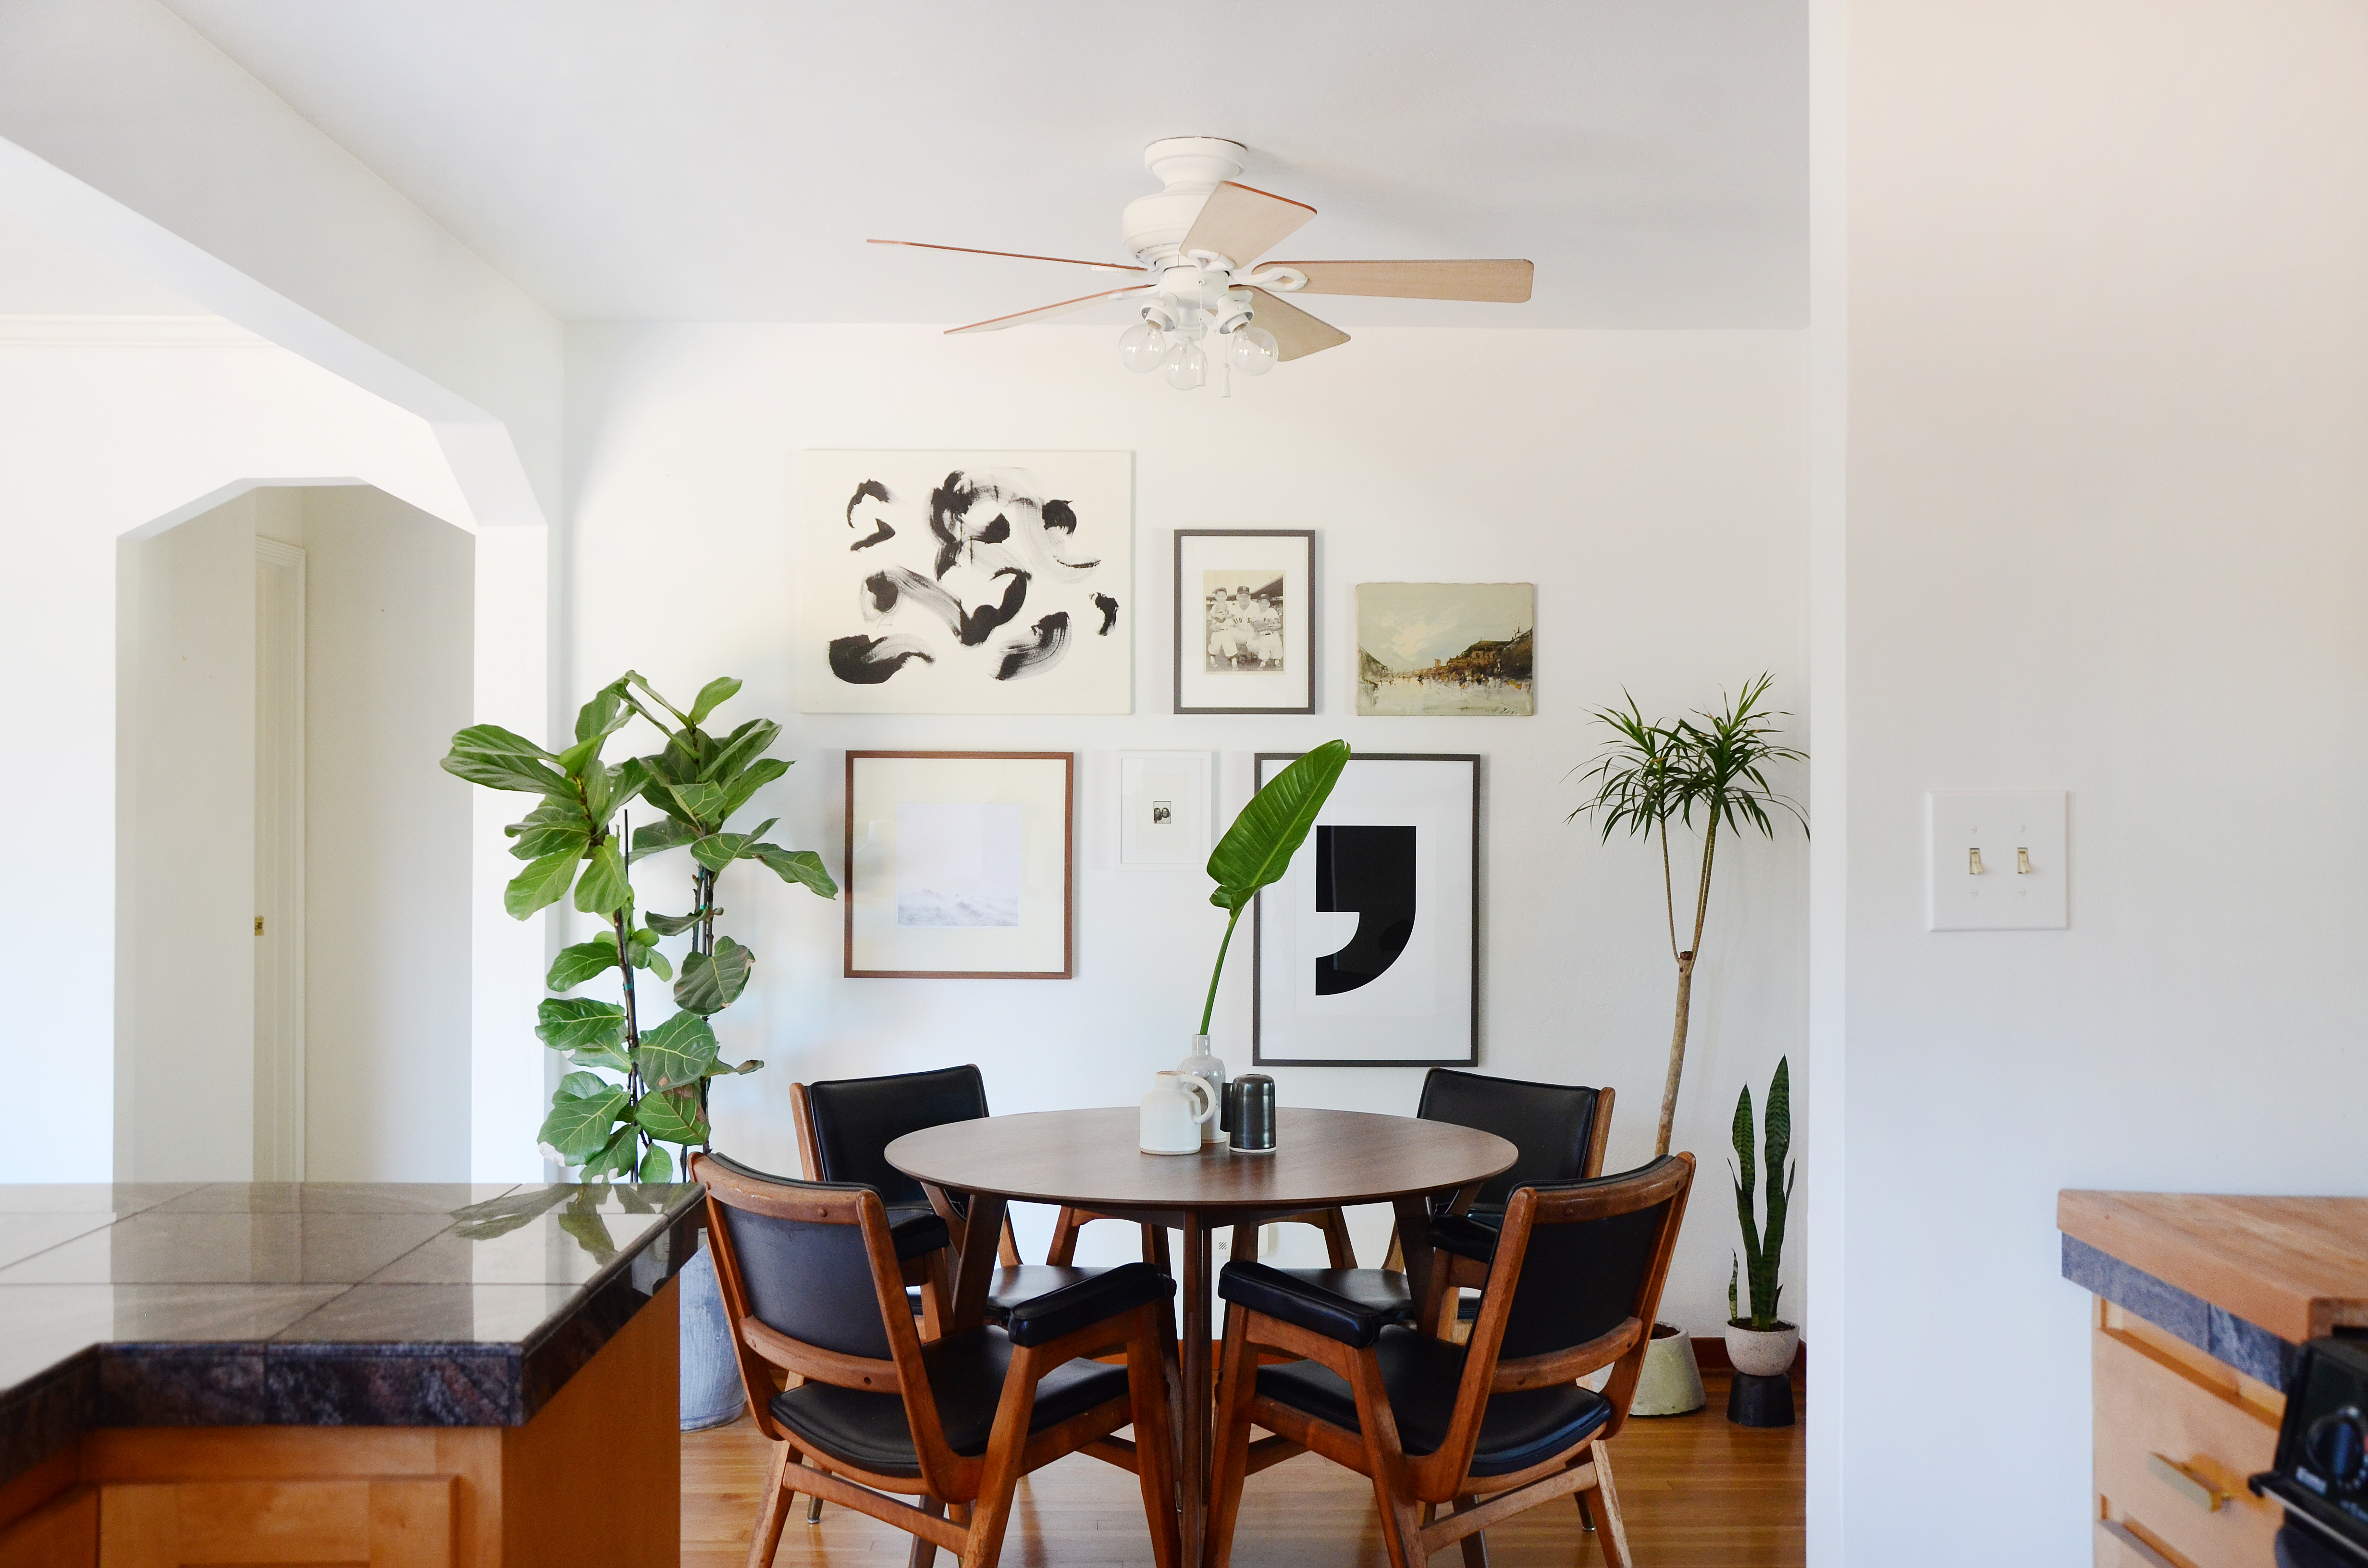 Clean Dining Chairs And Table Legs Weekend Projects 2019 Apartment Therapy